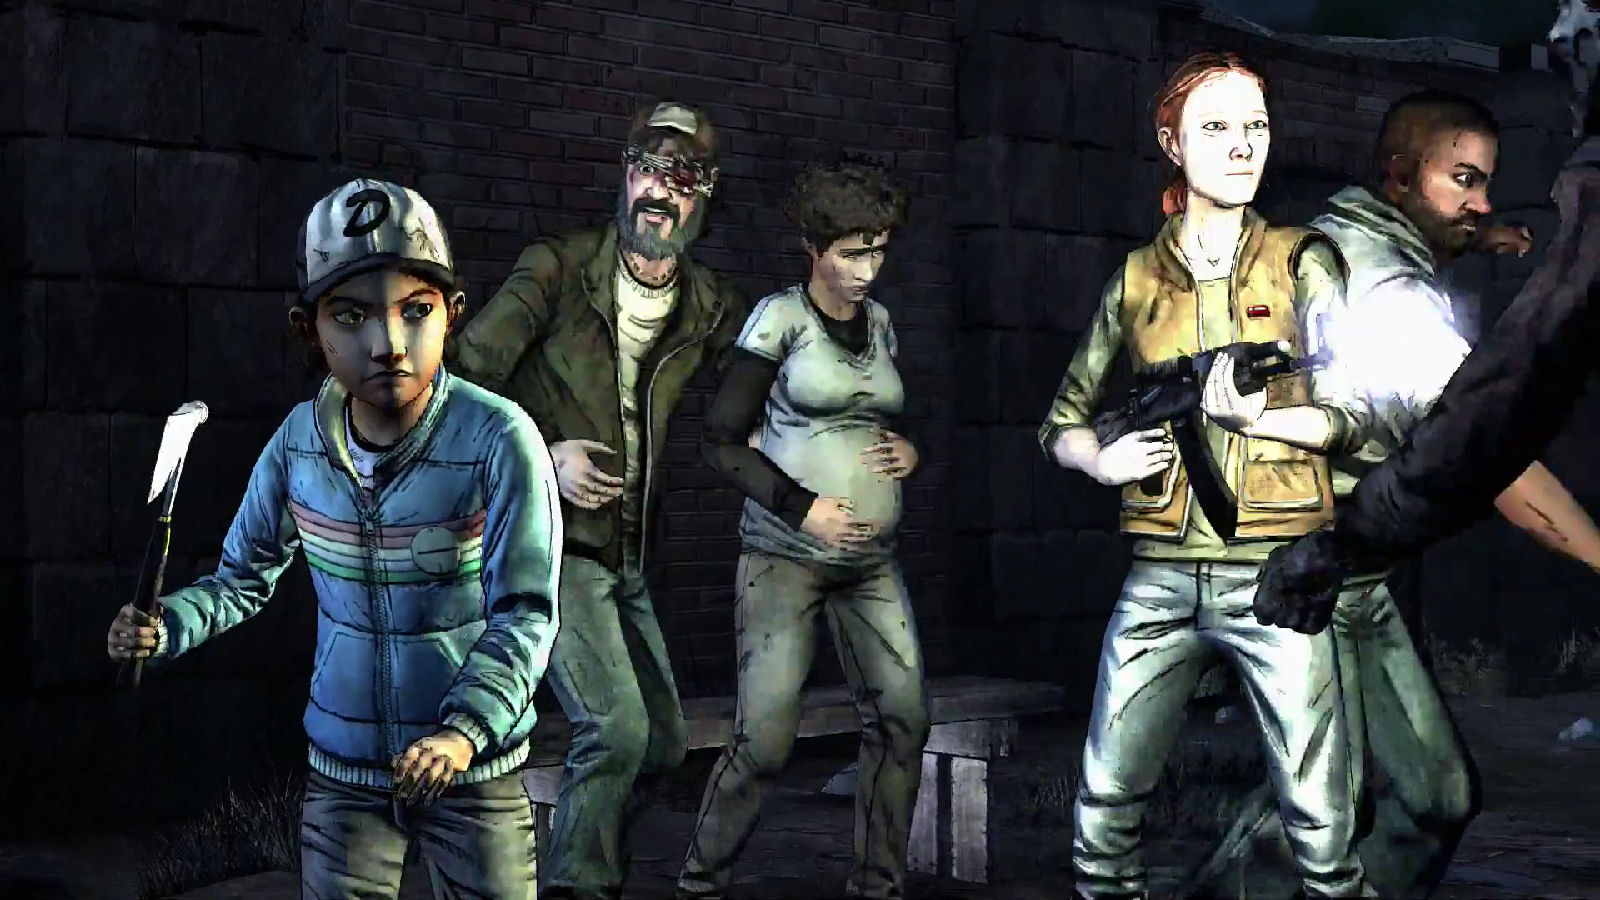 The Walking Dead: Season Two – Episode 4 releases next week